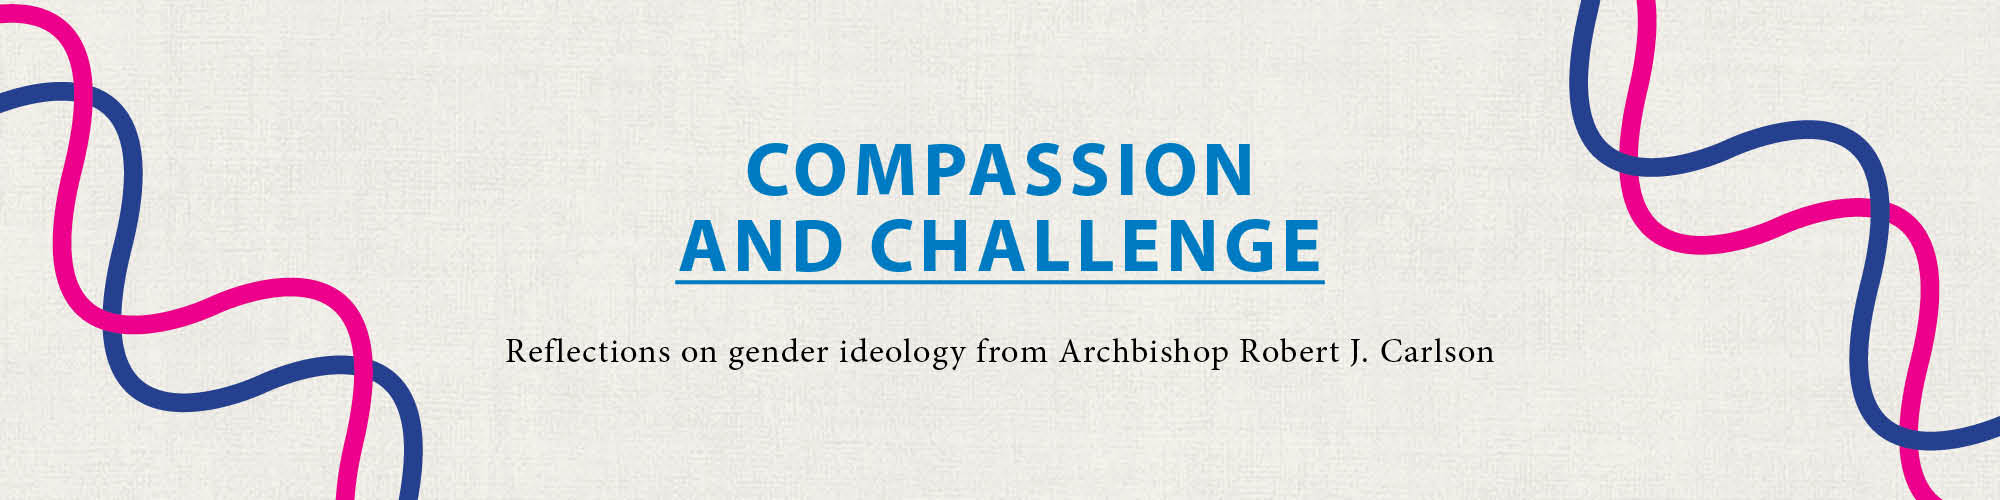 compassion-and-challenge-header